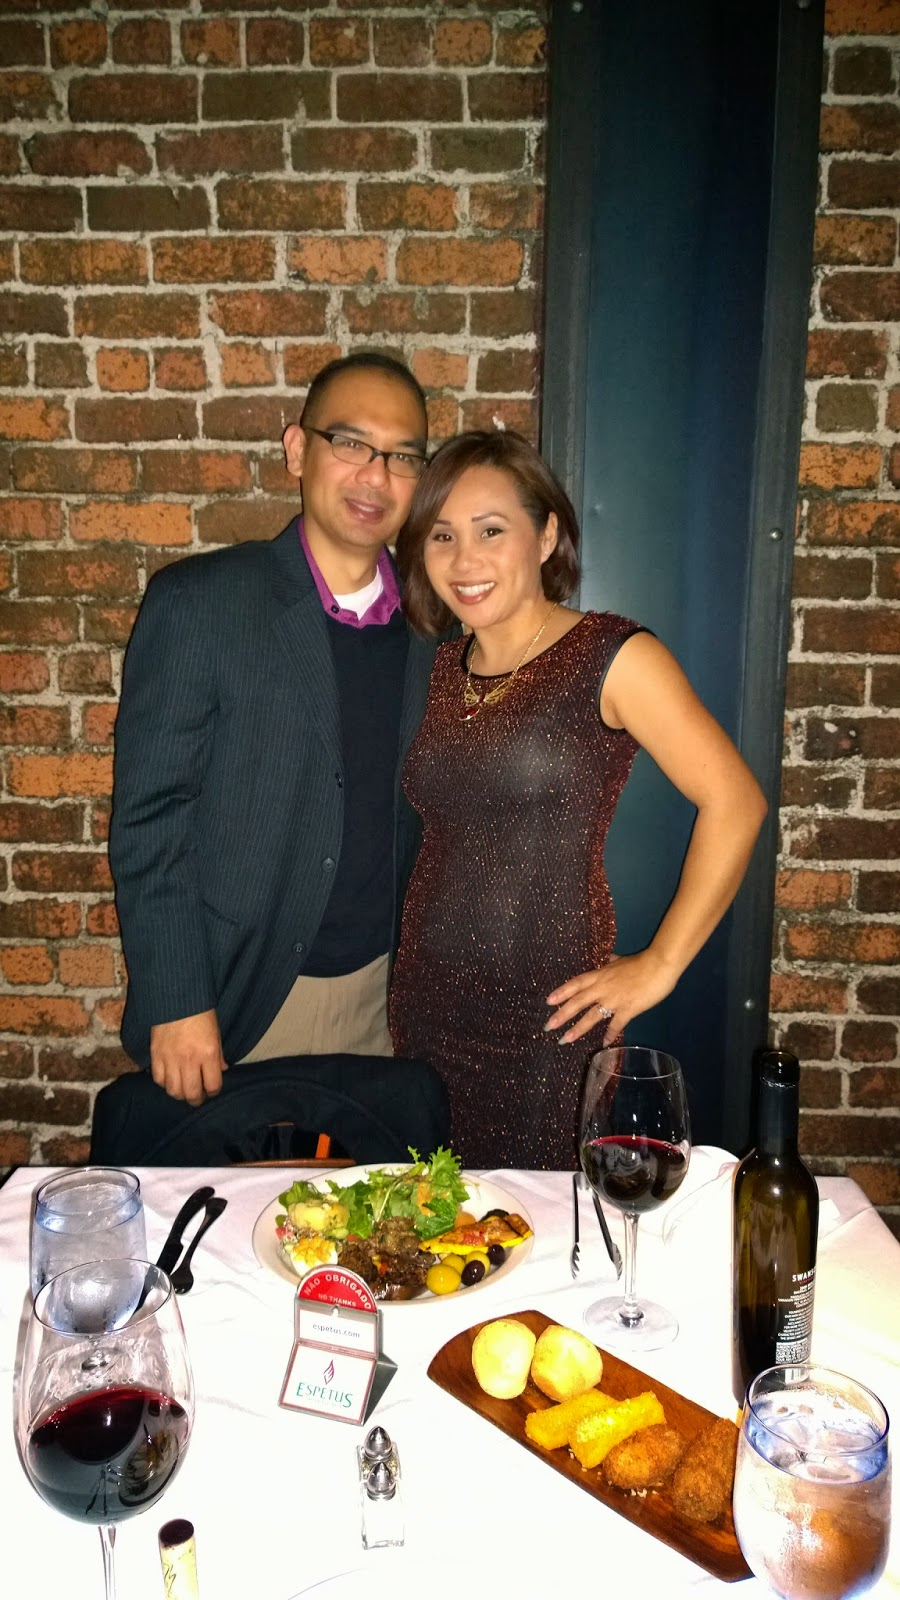 John Gamboa and wife at Espetus, San Francisco